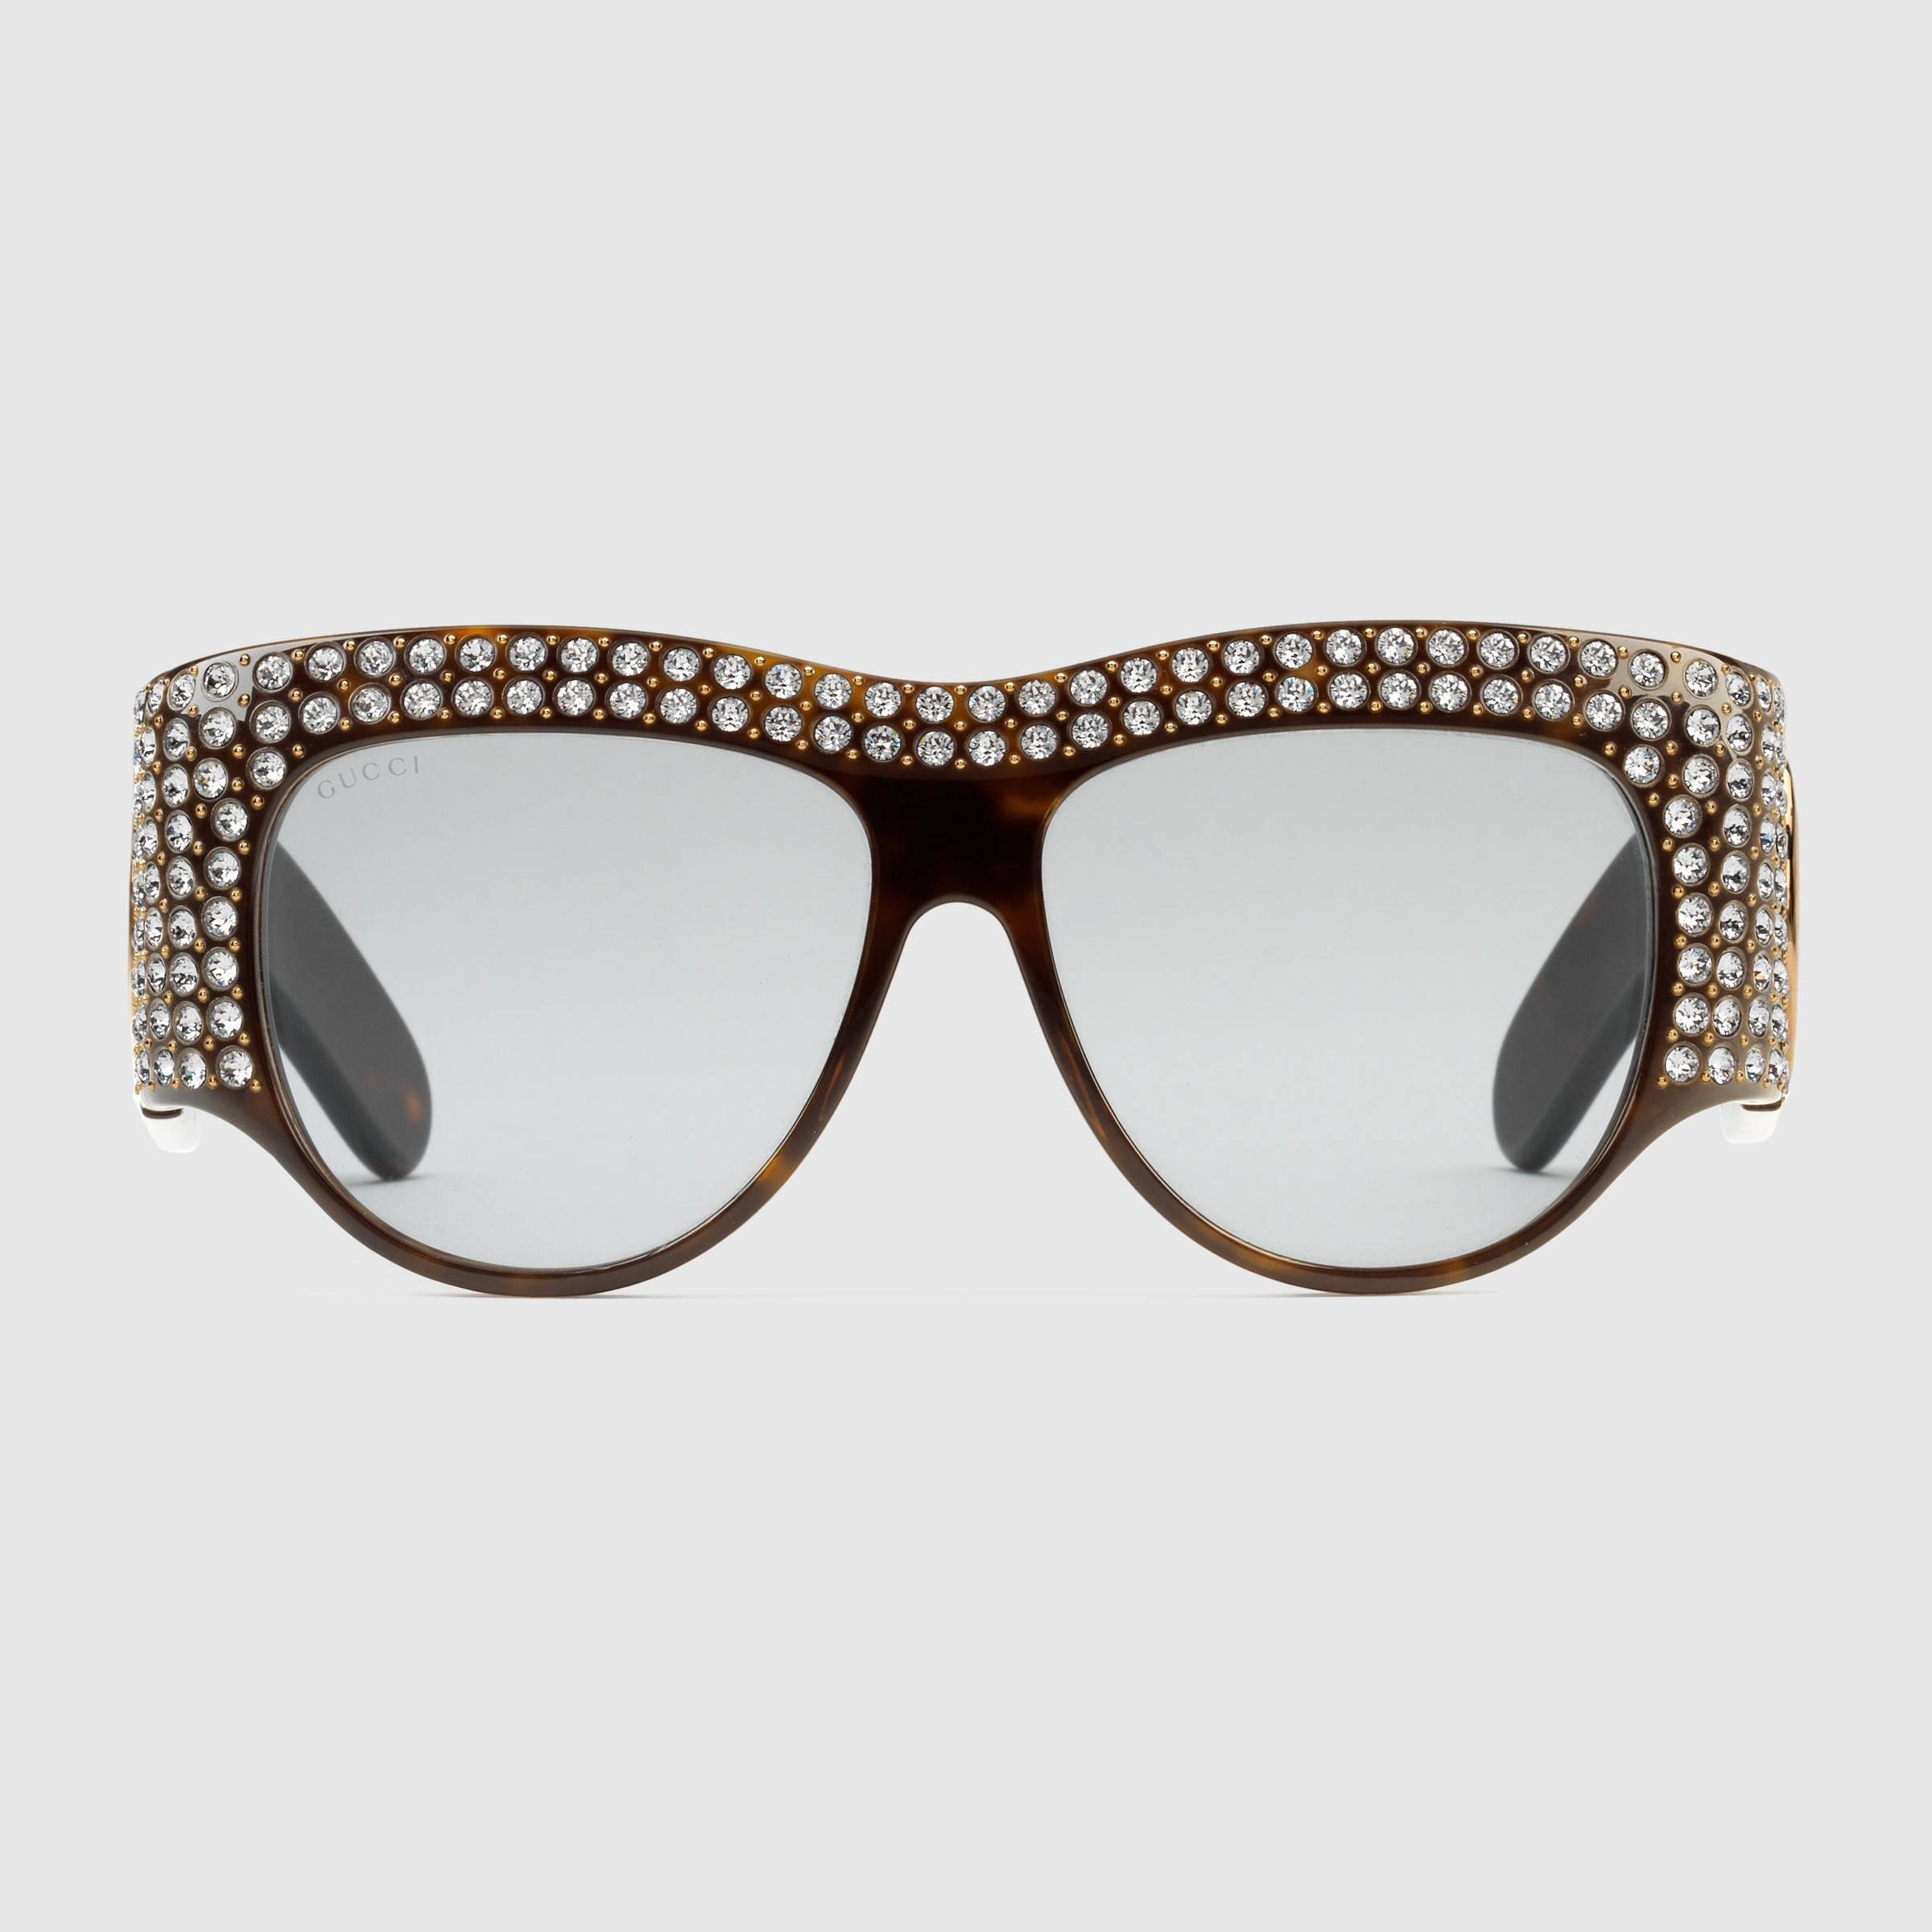 54f7162394c Lyst - Gucci Oversize Acetate Sunglasses With Crystals